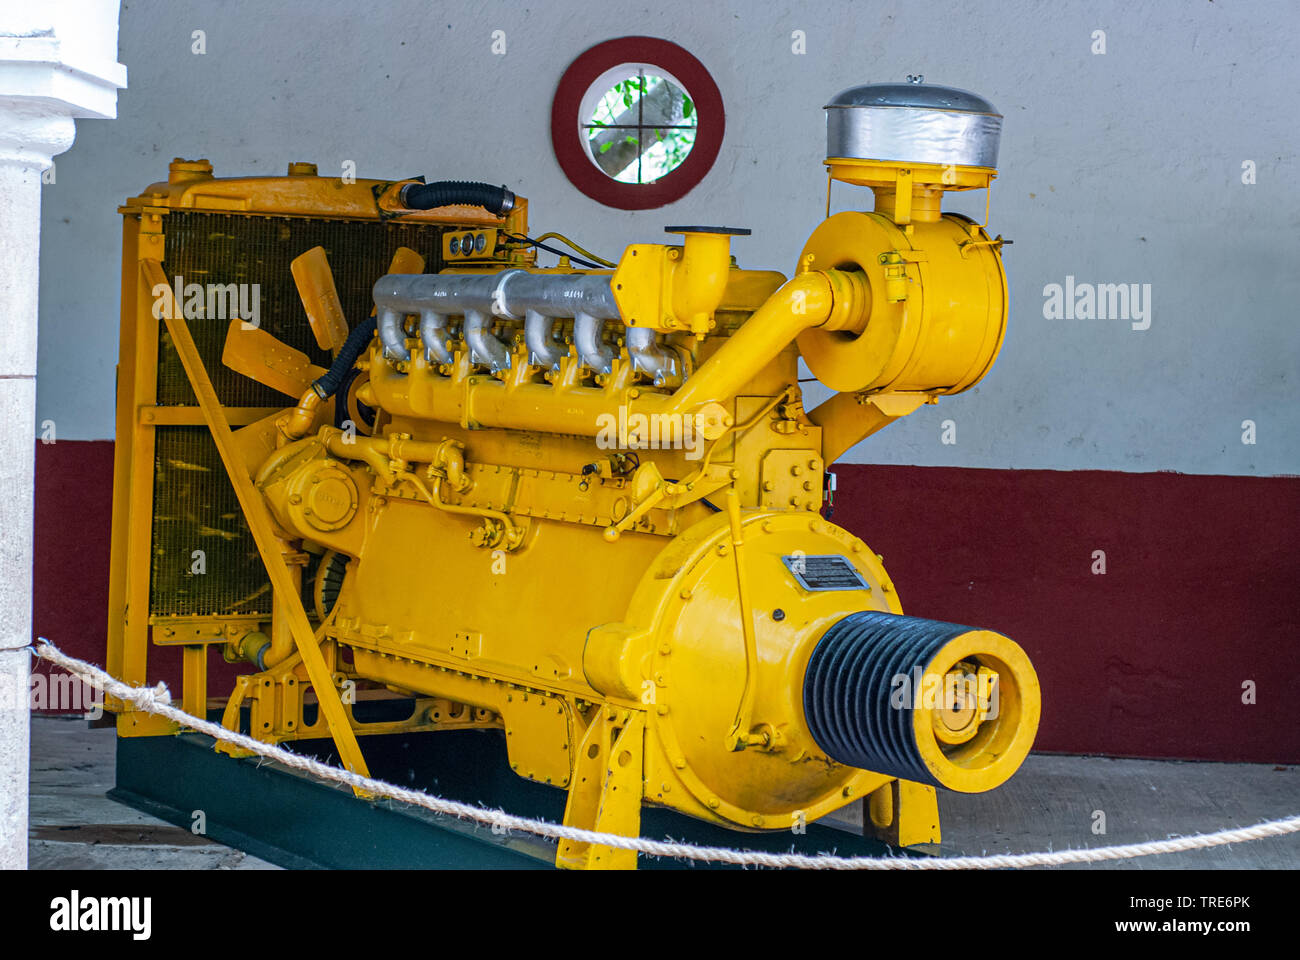 Old industrial engine, used to power factories, taken from Tecoh, in the Yucatan peninsula - Stock Image